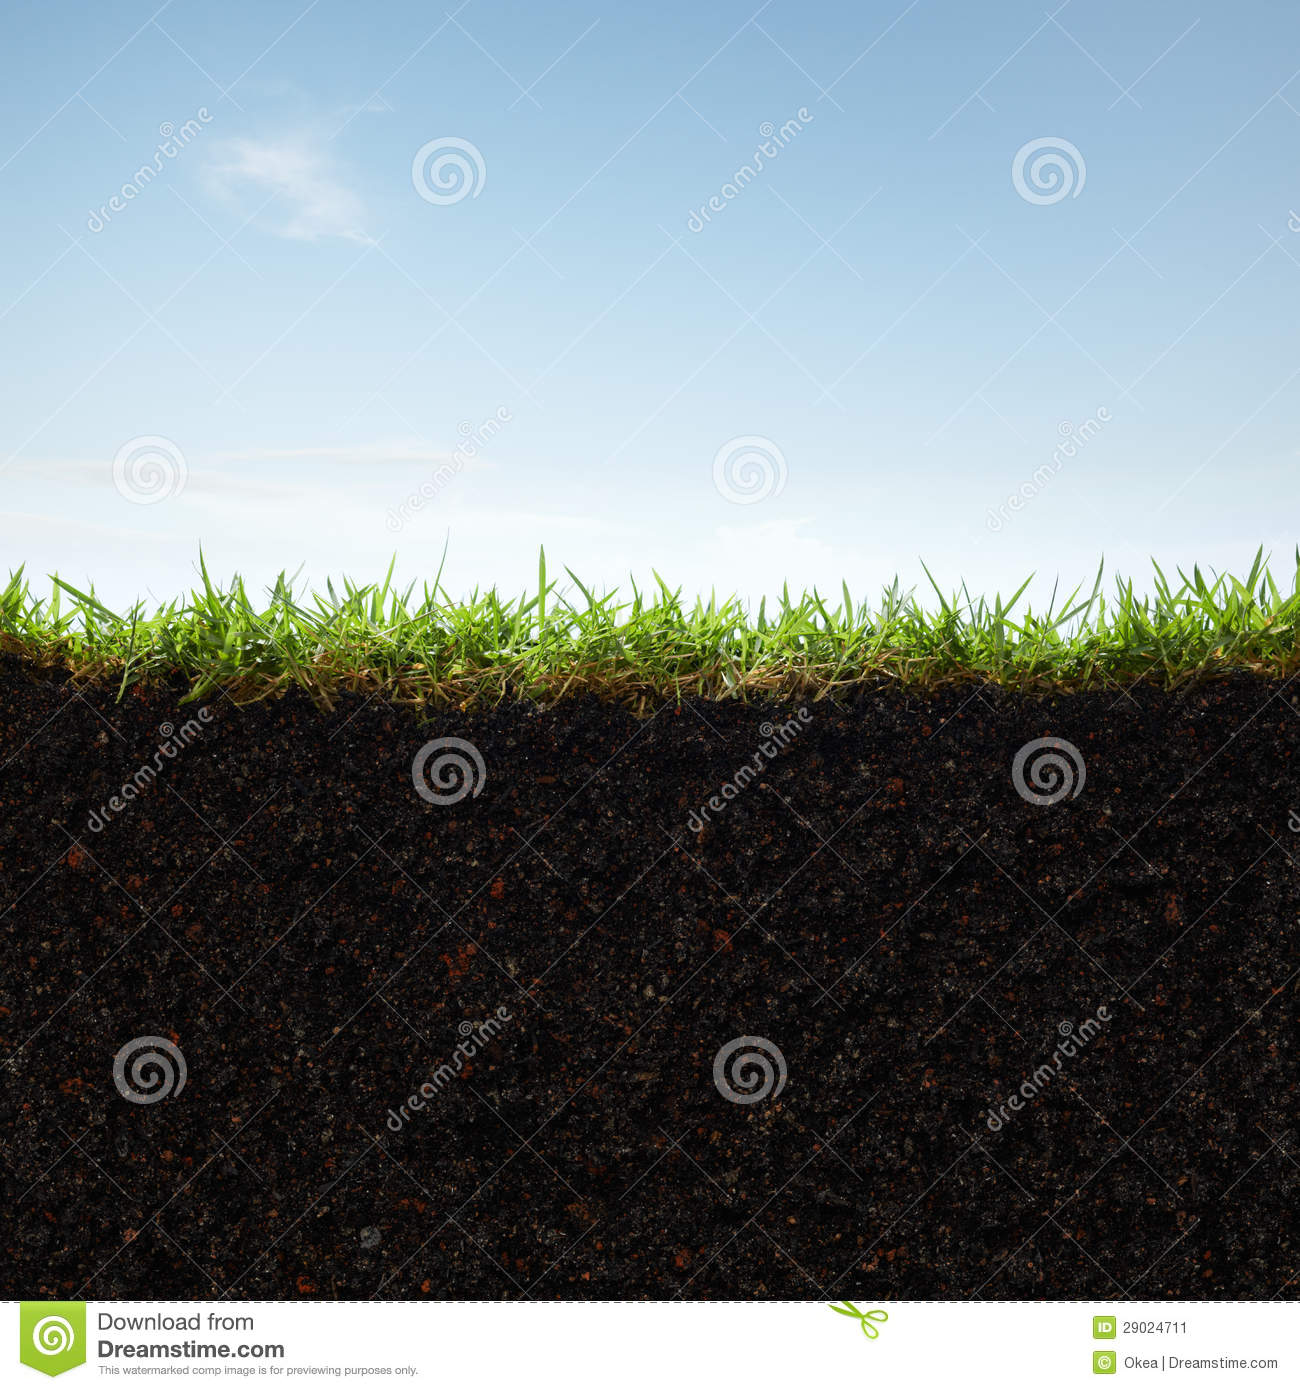 Grass And Soil Stock Image. Image Of Section, Lawn